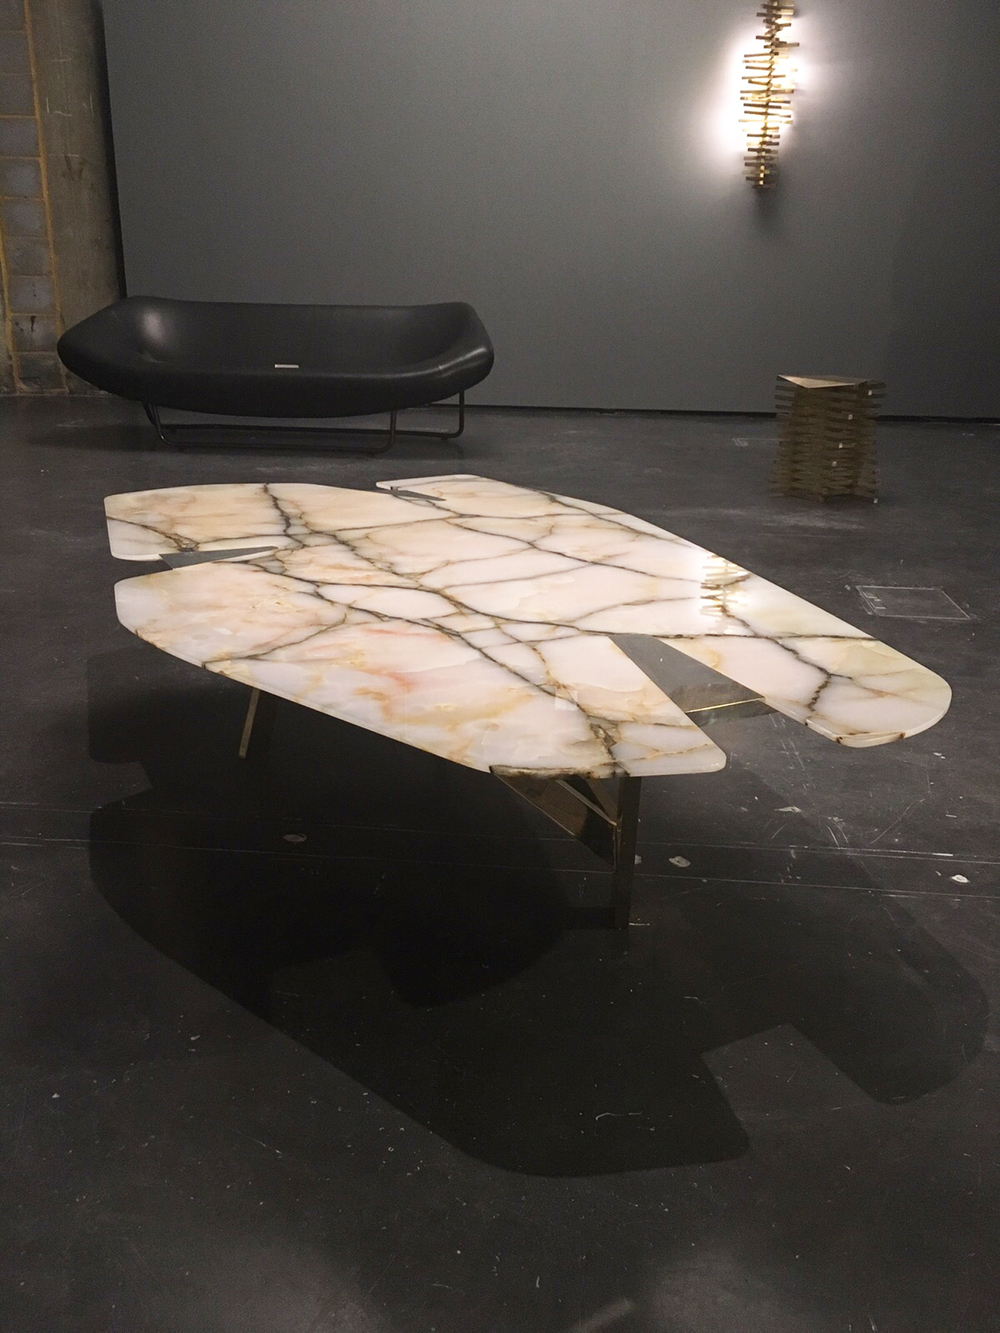 Onyx table with reverse knife edge detail, sculptural sofa and aged brass side table.